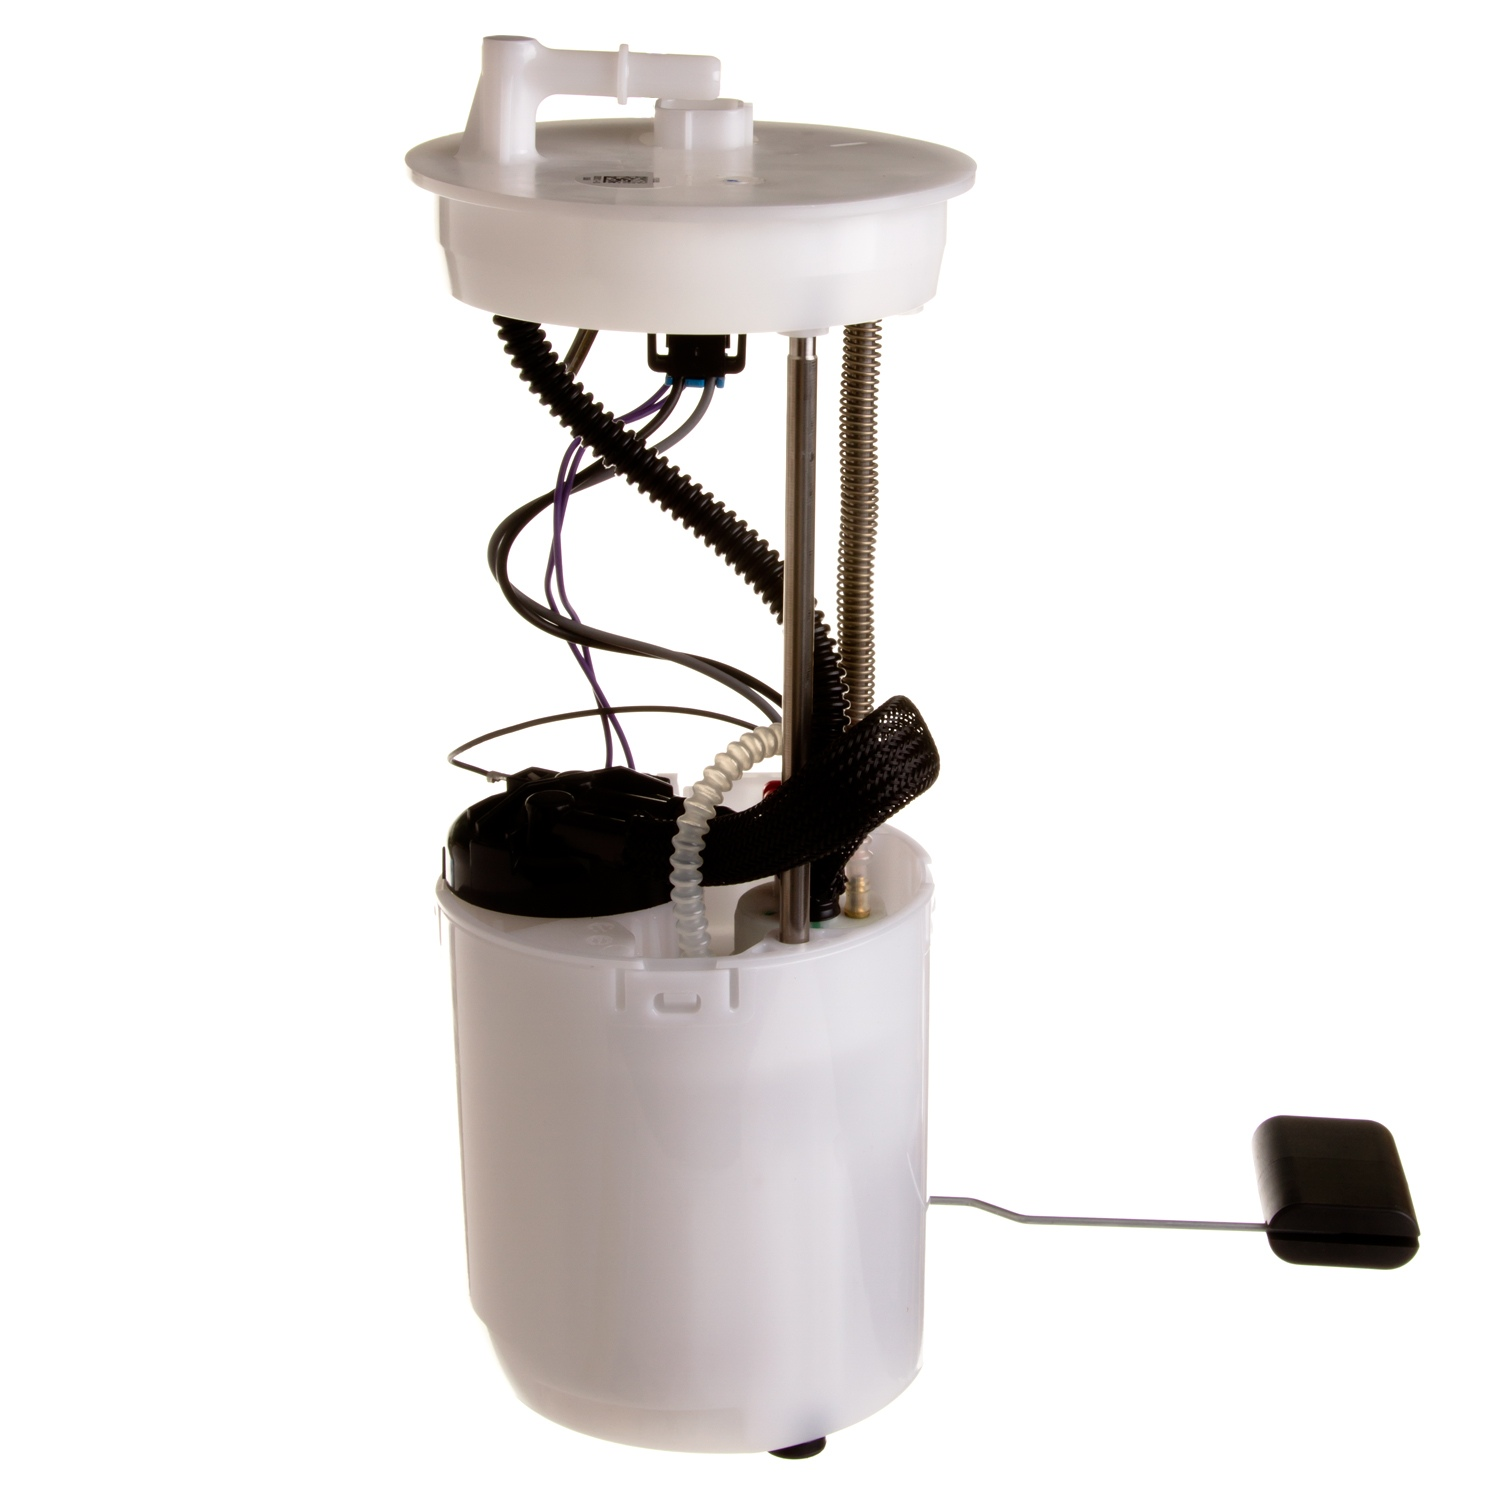 DELPHI - Fuel Pump Module Assembly - DPH FG0958